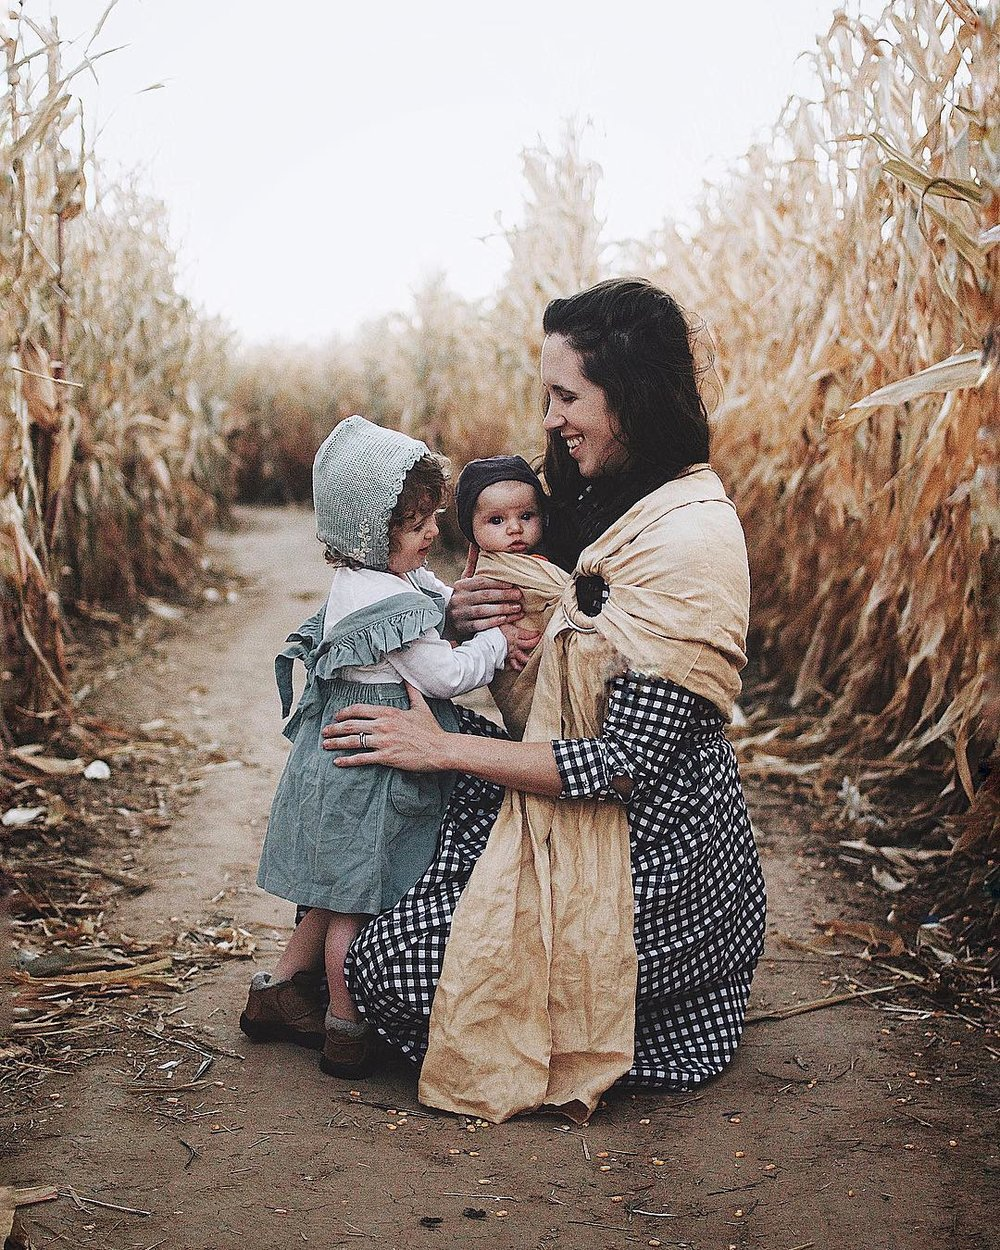 Kayla and her two daughters, Jessamyn and Ophelia